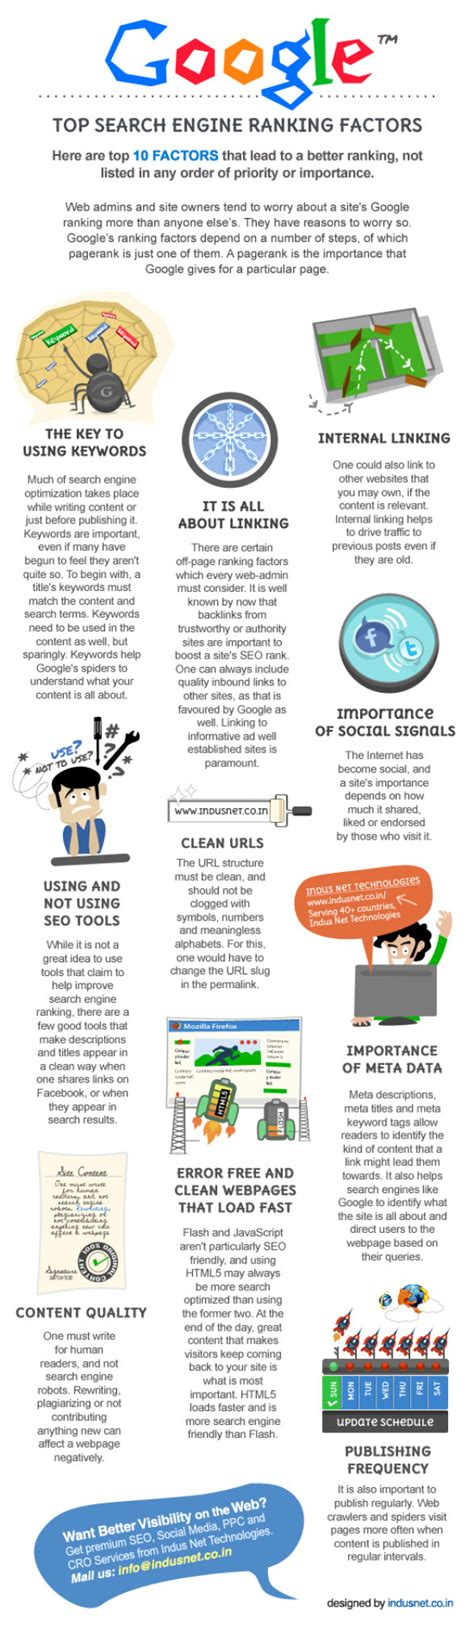 Search Engine Ranking - infographic top search engine ranking factors for